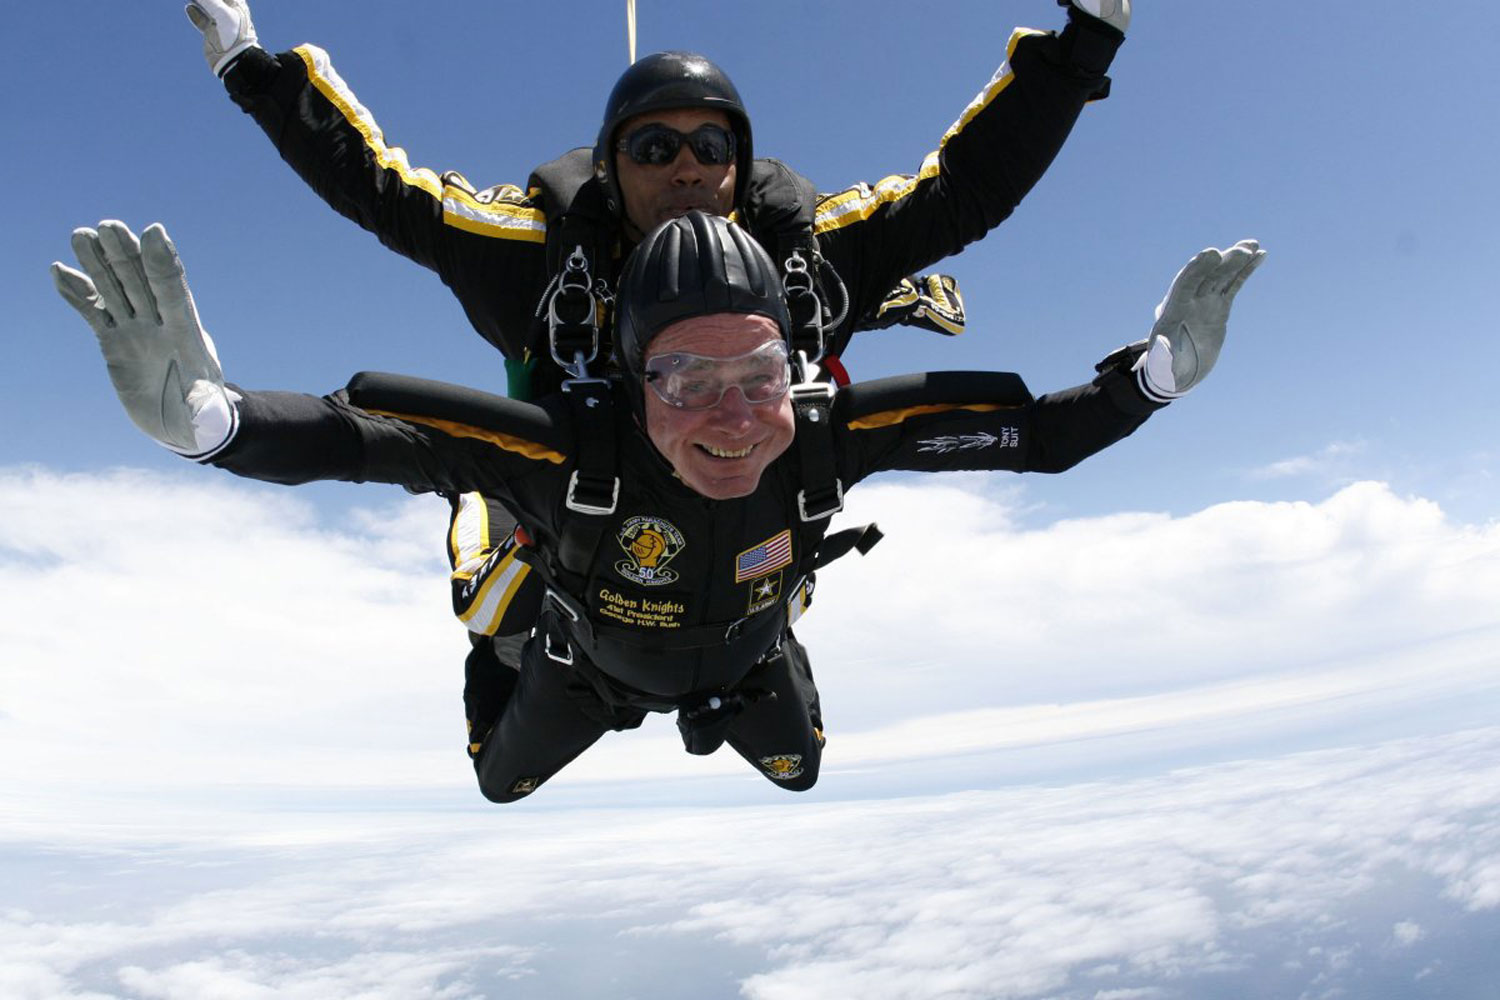 Retired Gen. Shelton: George H.W. Bush Nearly Died in Skydiving Accident